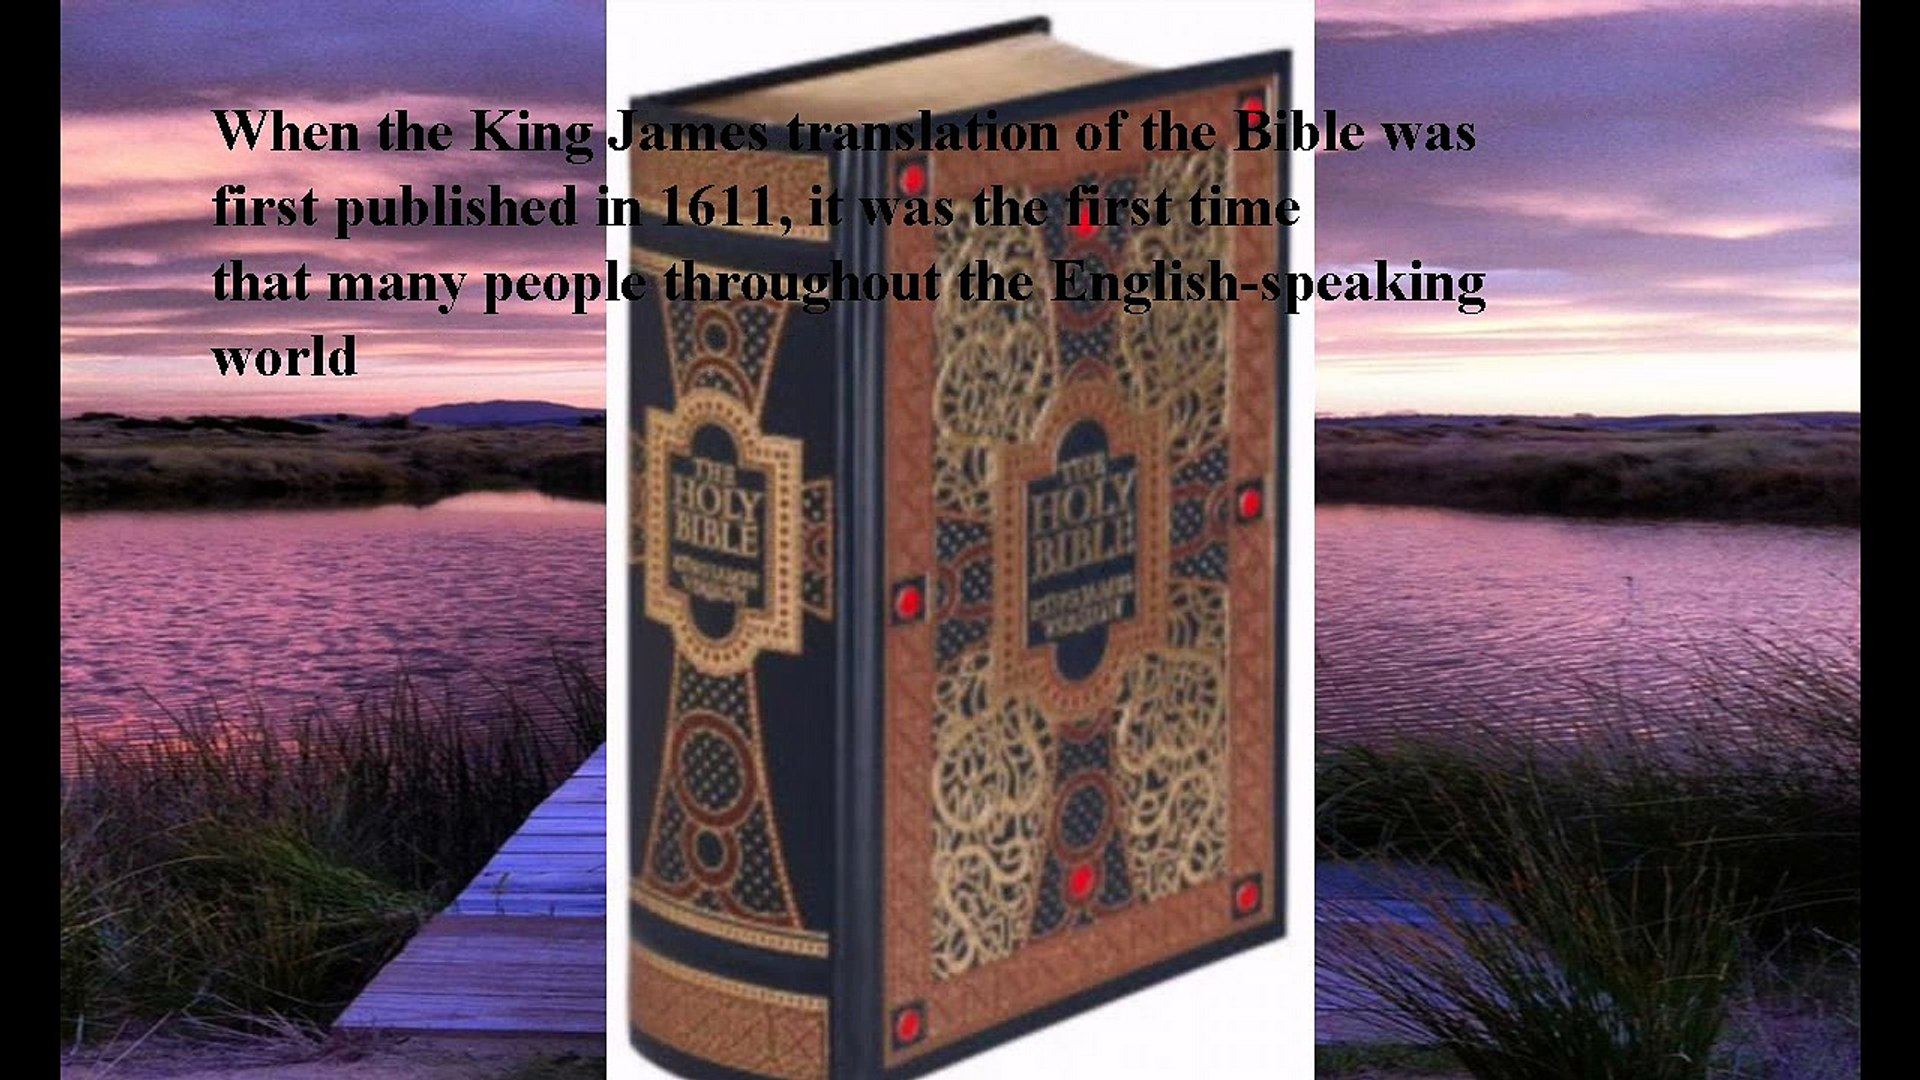 Download The Holy Bible: King James Version (Barnes & Noble Collectible  Editions) ebook PDF